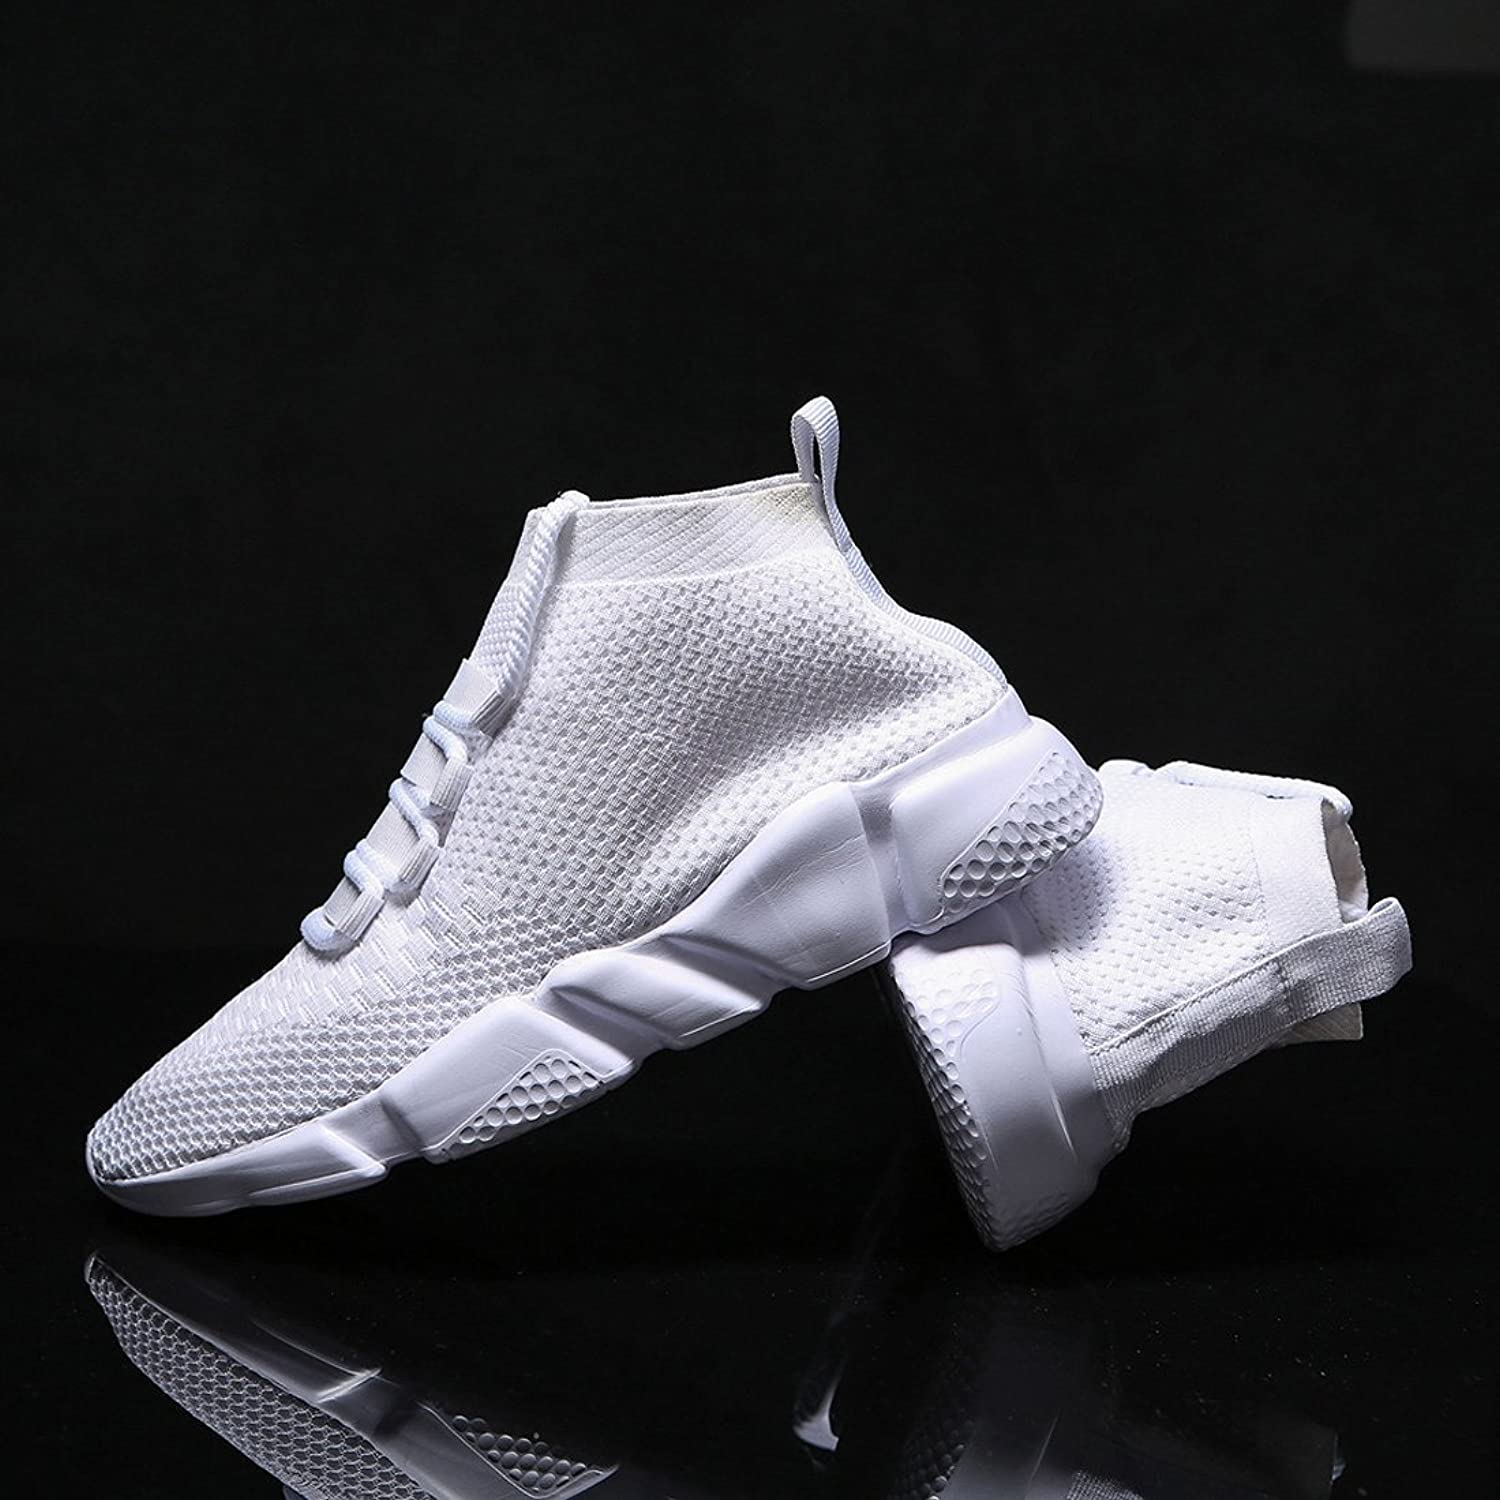 e8123e7d43edd Mua sản phẩm Mevlzz Mens Casual Athletic Sneakers Knit Running Shoes ...